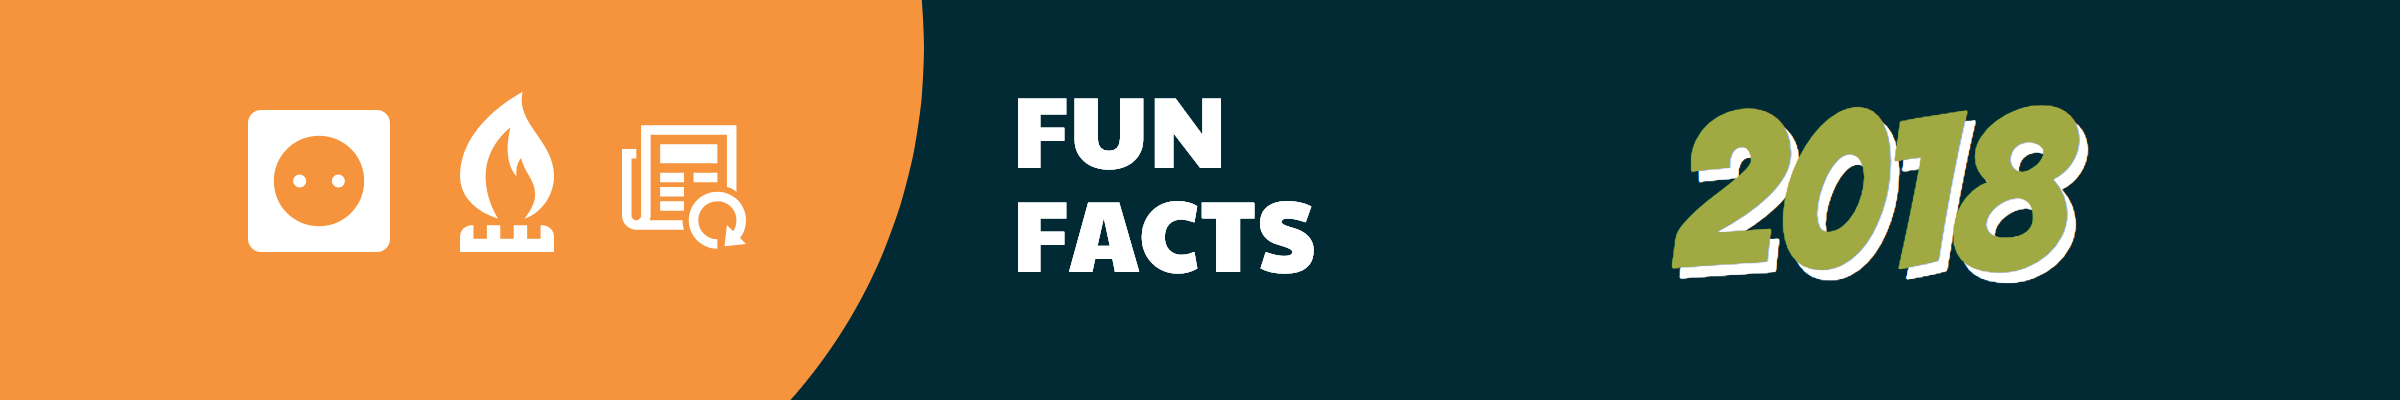 Fun facts 2018 overskrift